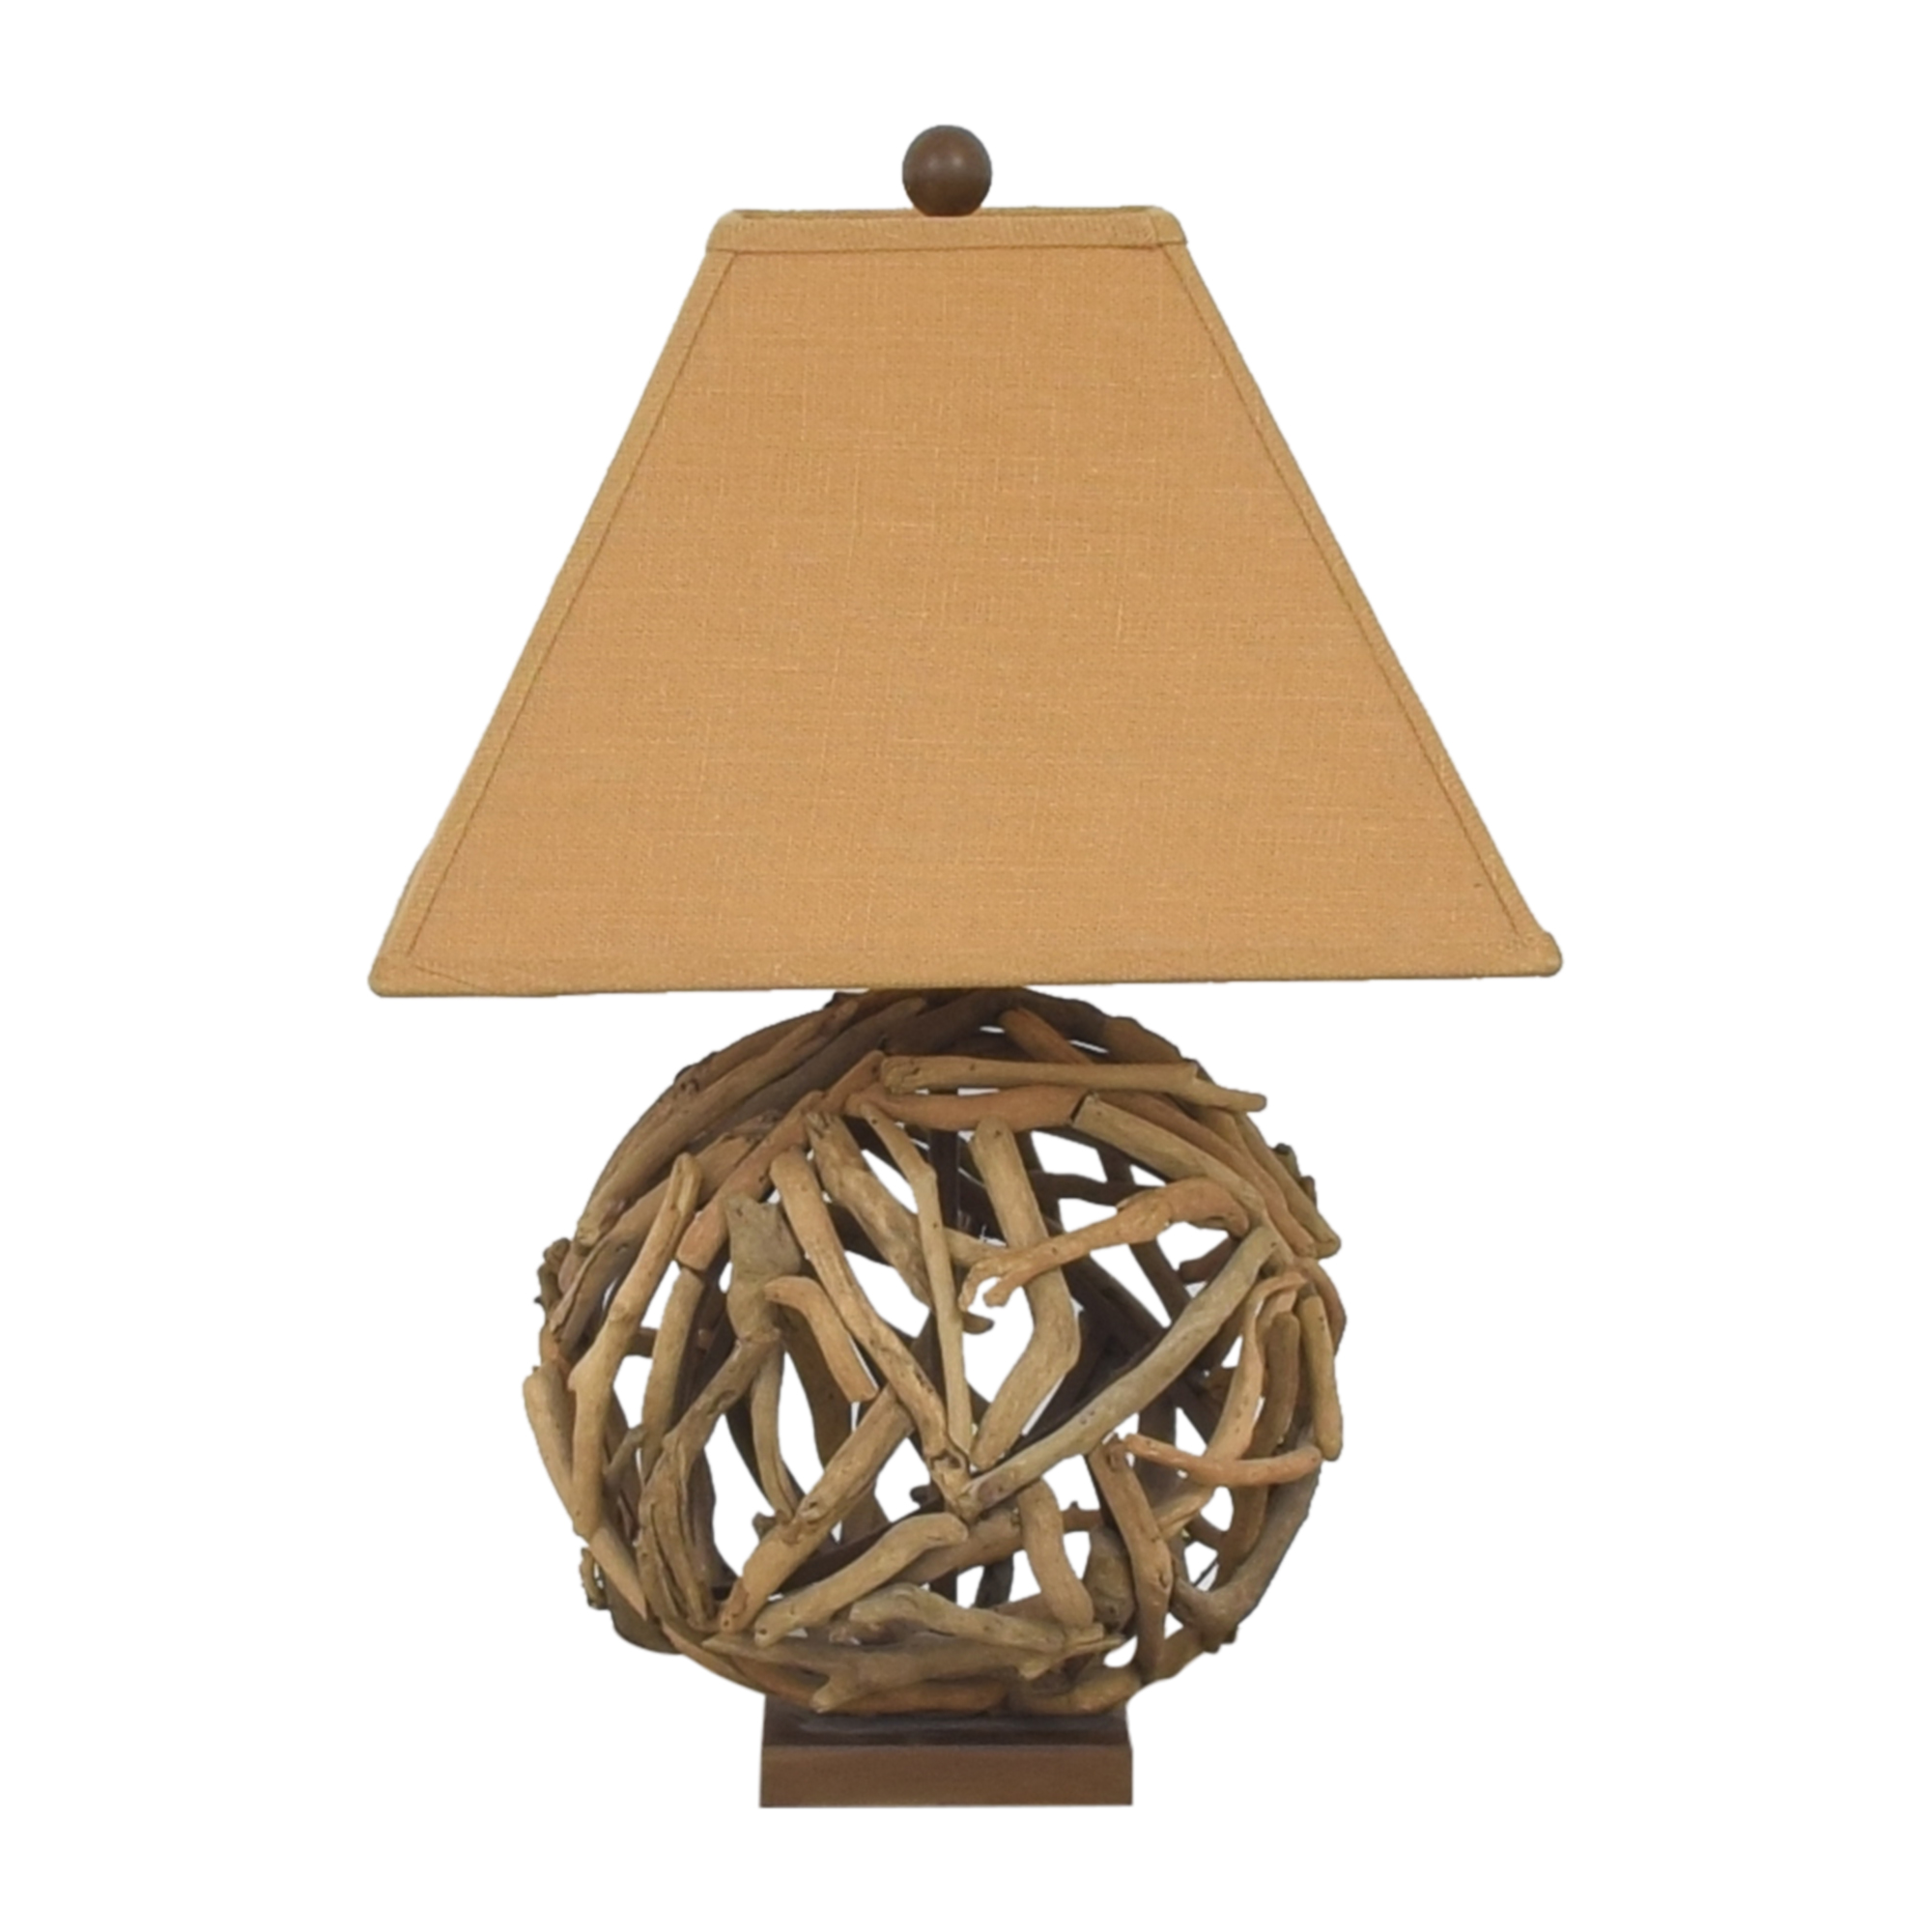 Currey and Company Currey and Company Driftwood Table Lamp used